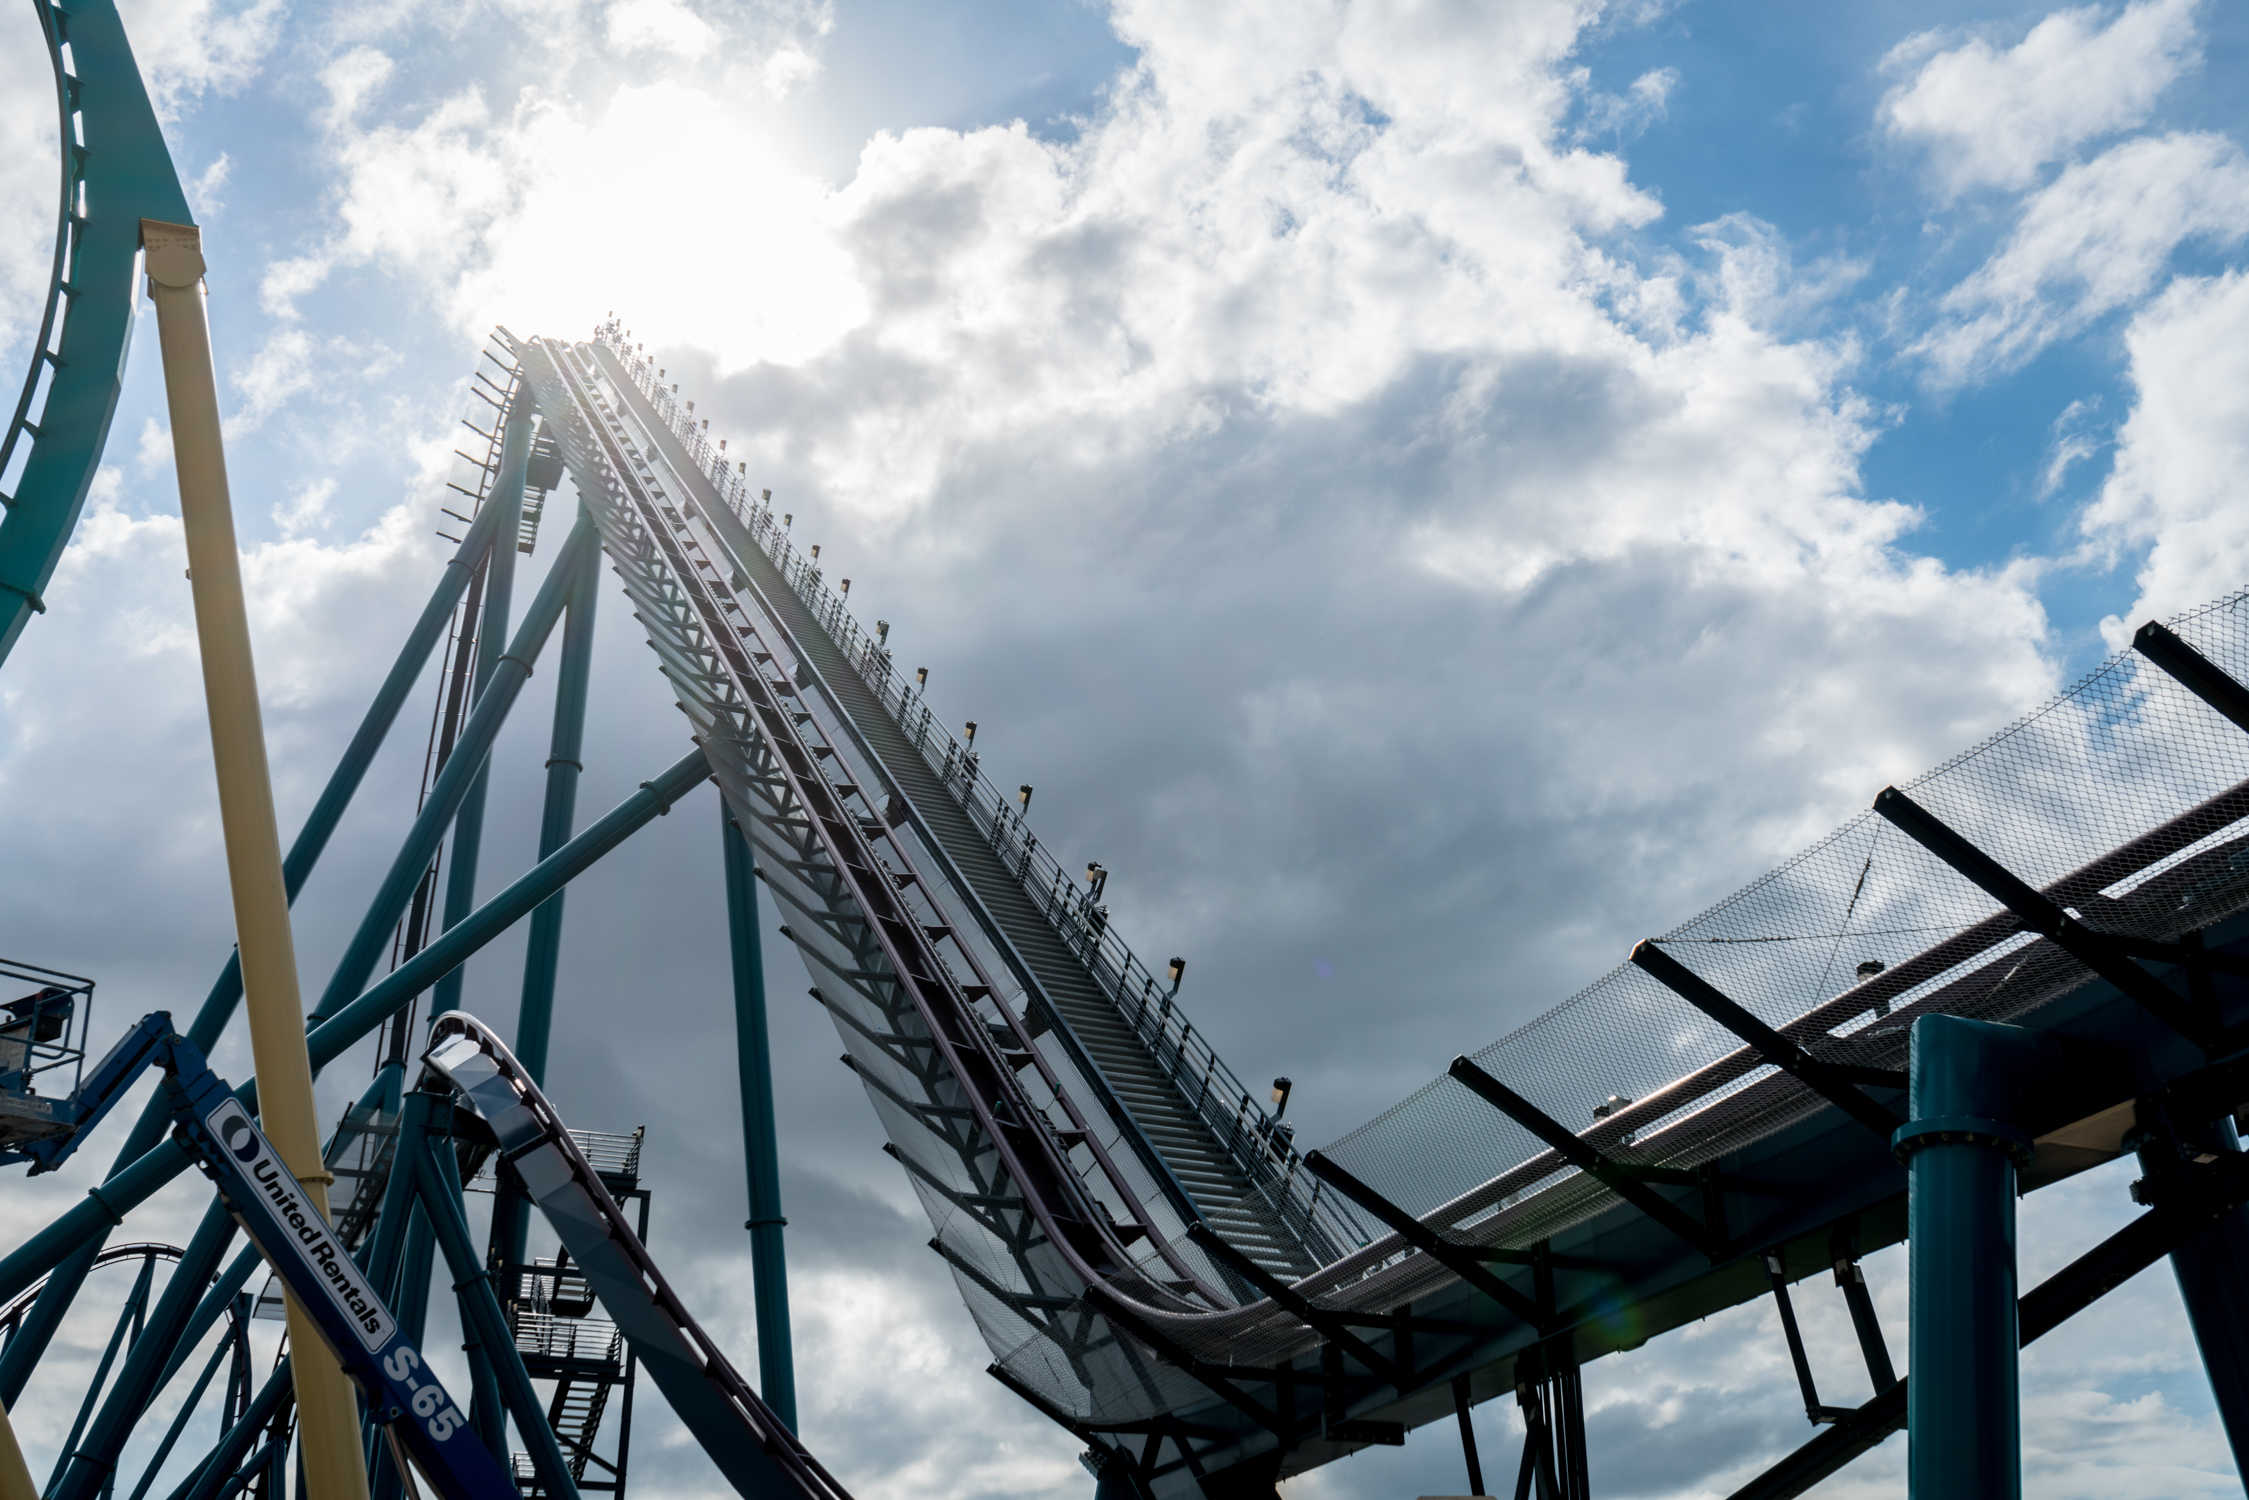 Mako now open at SeaWorld Orlando